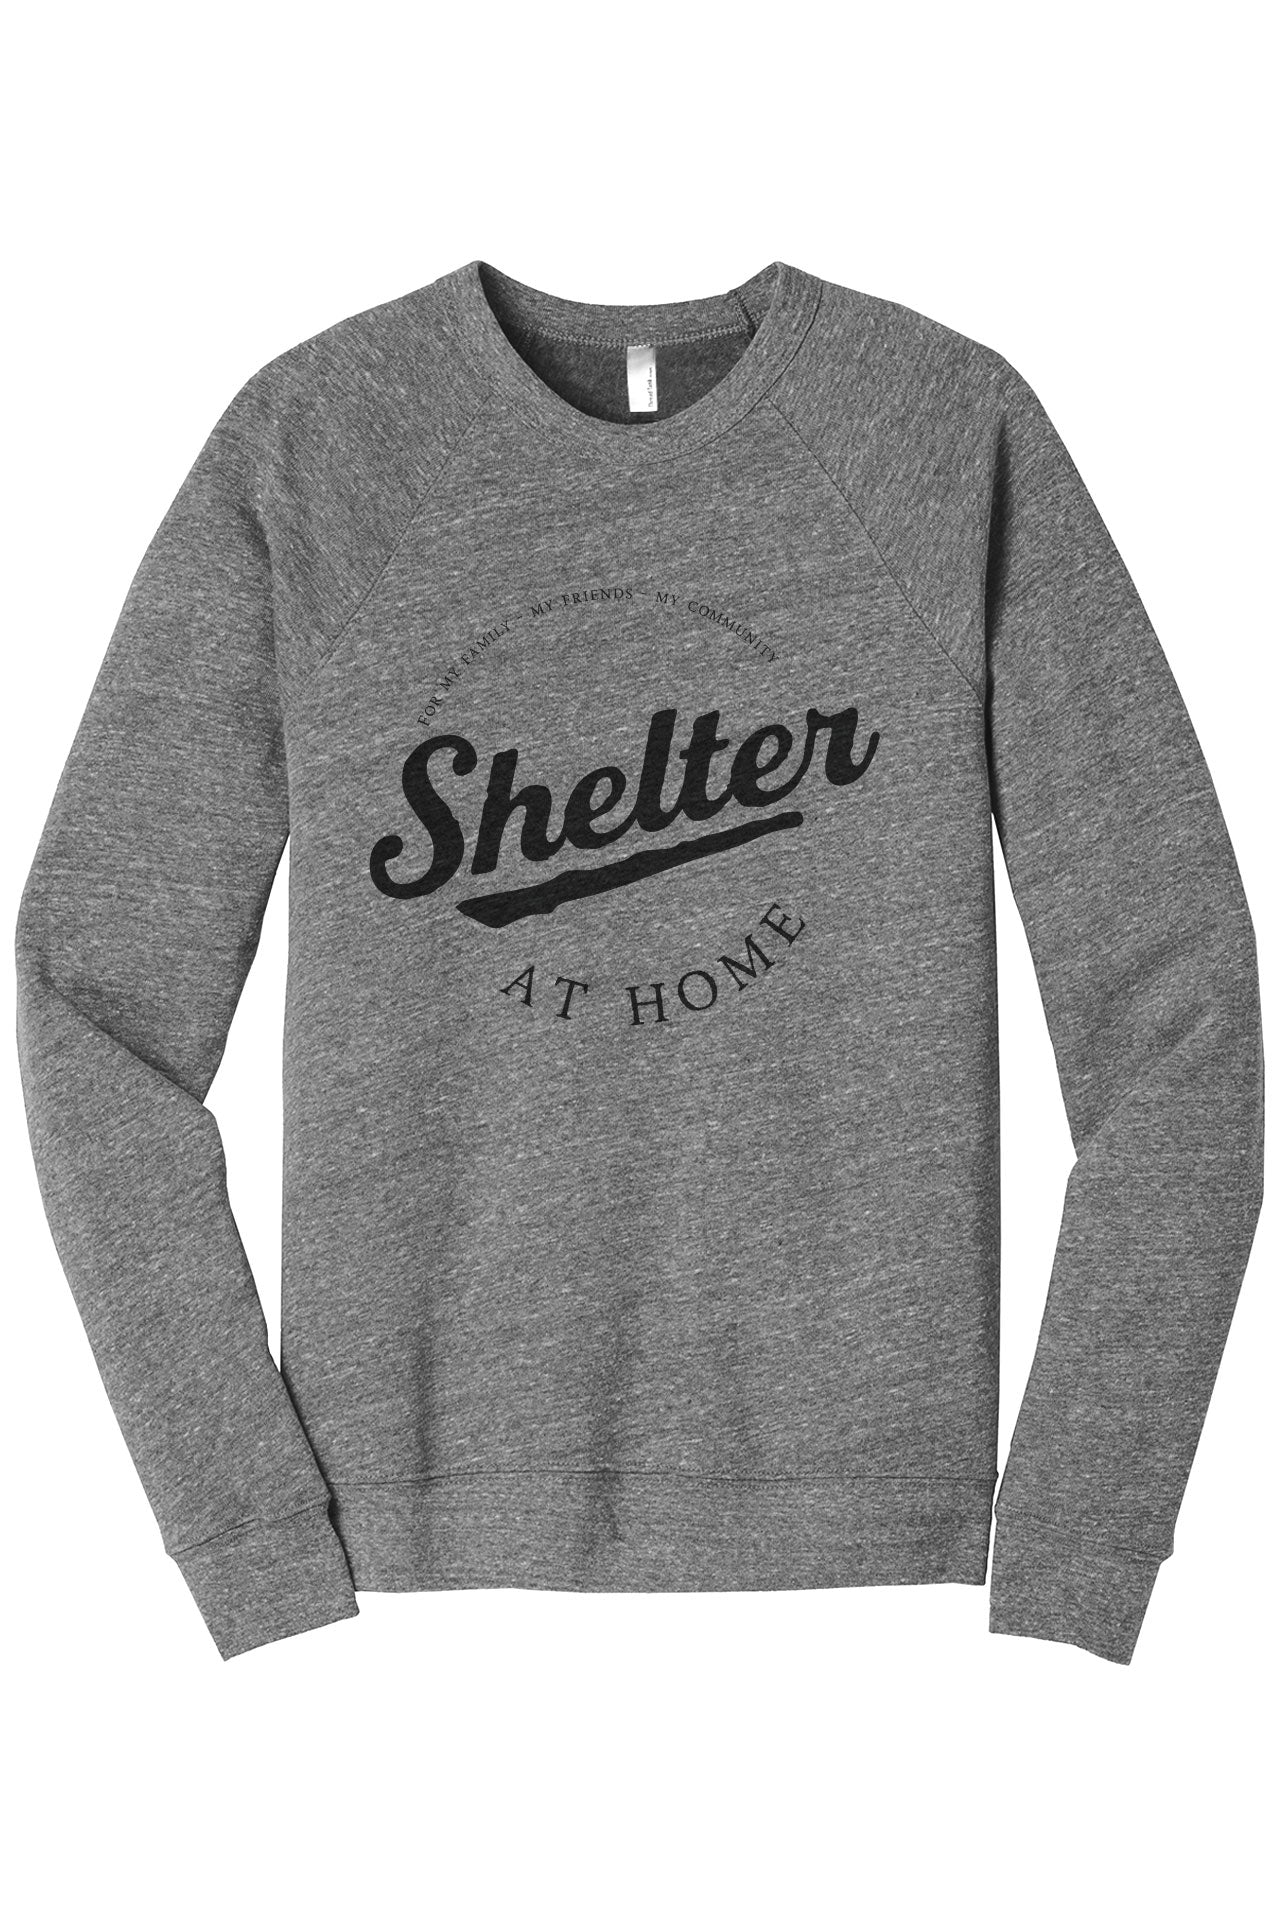 Shelter At Home Women's Cozy Fleece Longsleeves Sweater Rouge Closeup Details